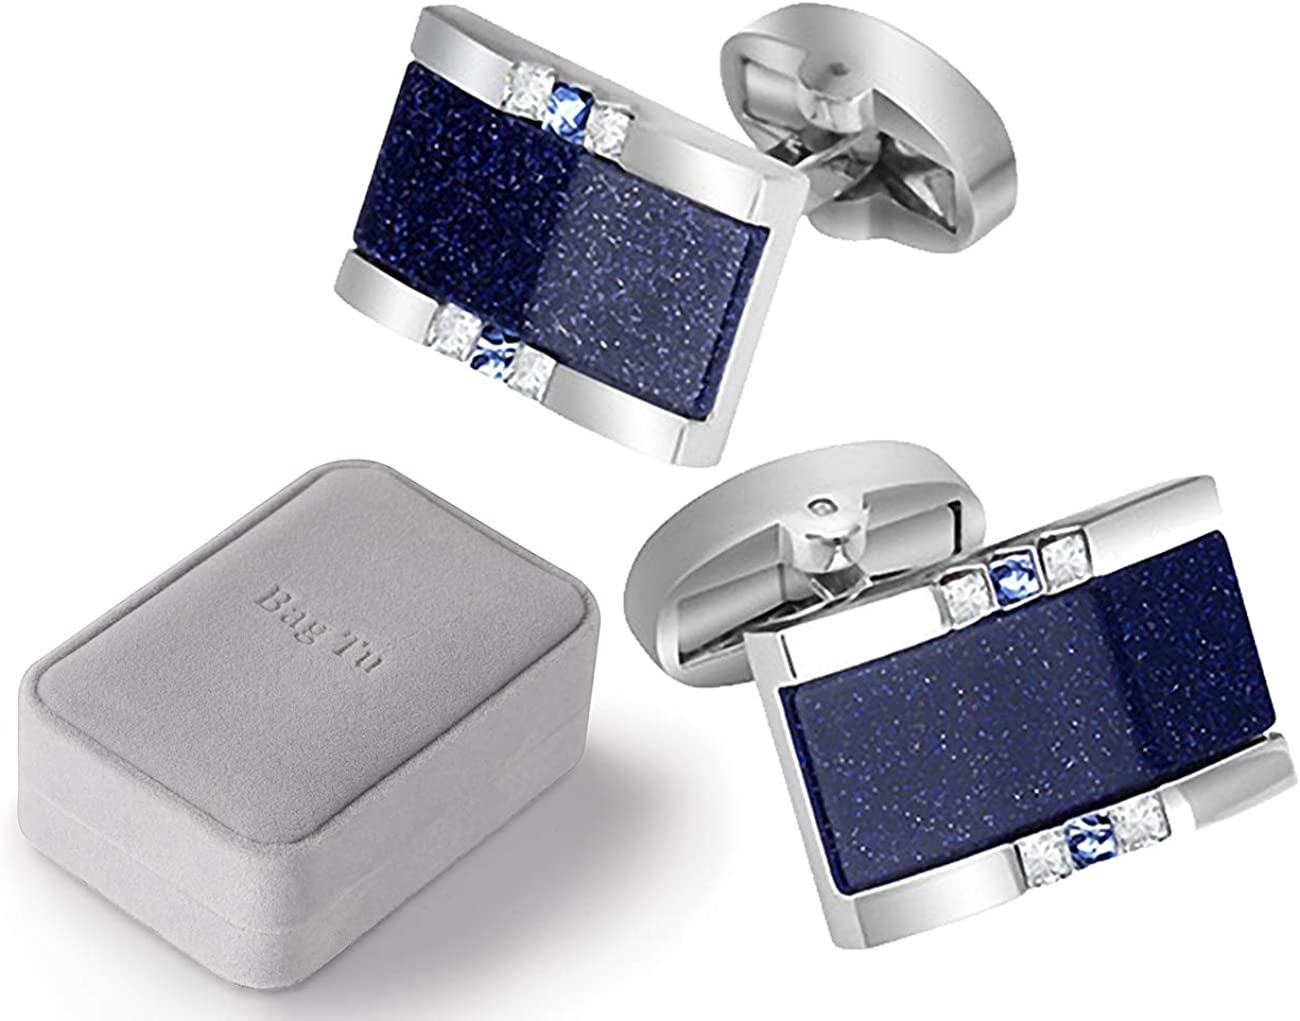 BagTu Starry Sky Cufflinks and Tie Clip Set with Gift Box and Greeting Card, Galaxy Dark Blue Cufflinks and Tie Clip Gift Set for Men